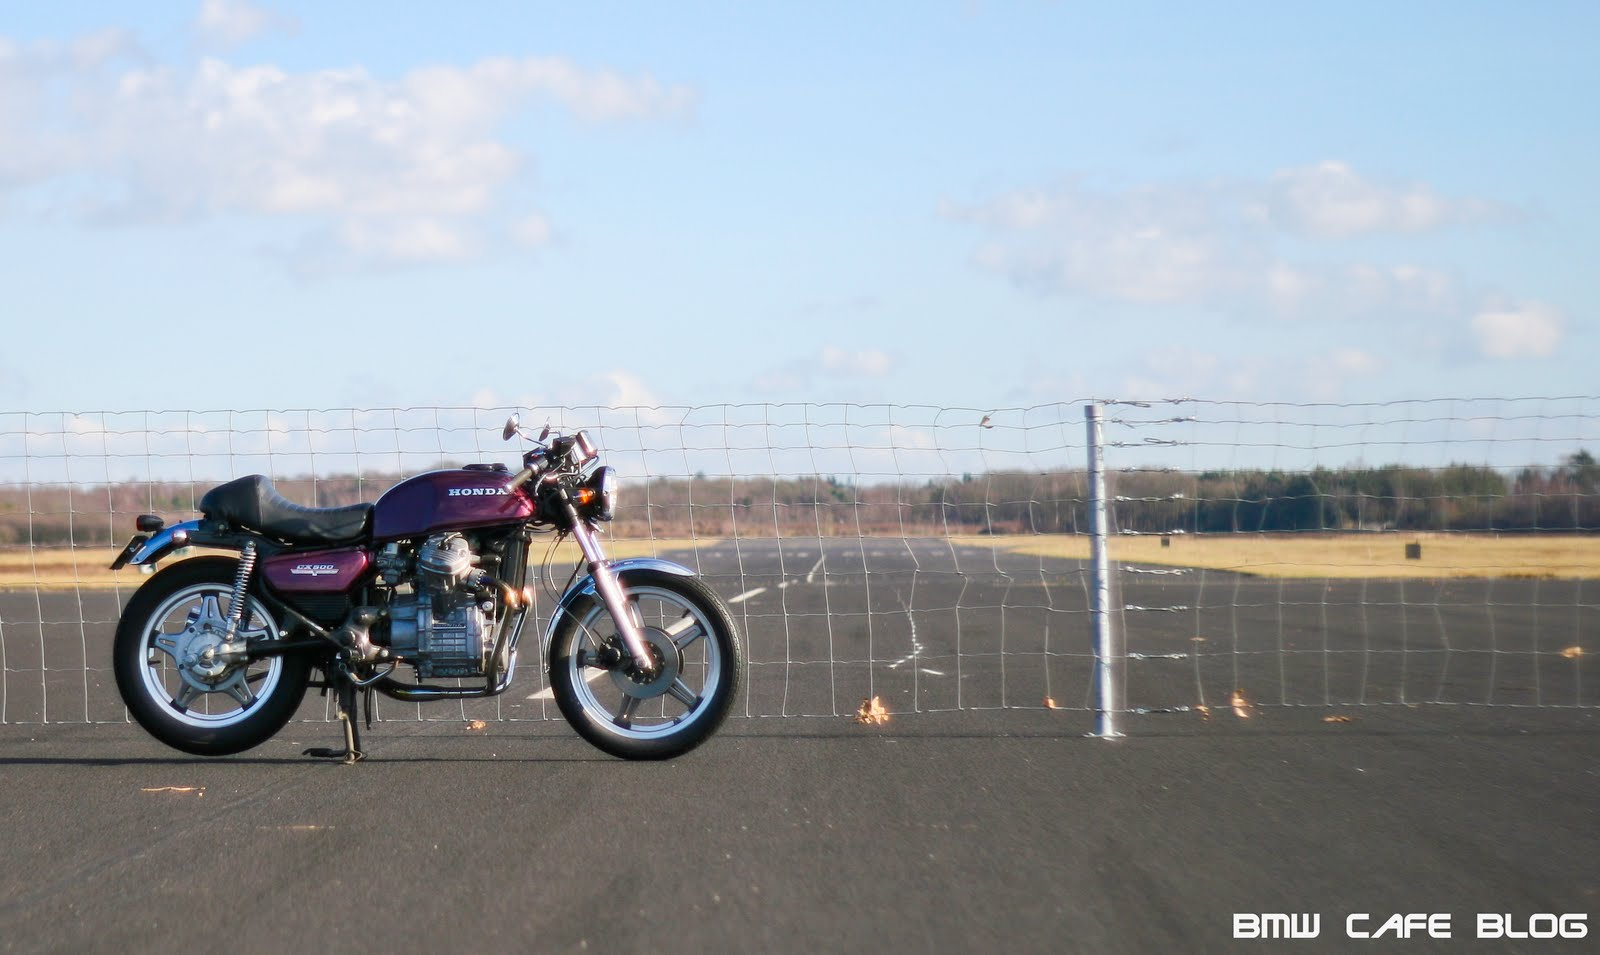 Low Budget Bikes To Turn Into Cafe Racer